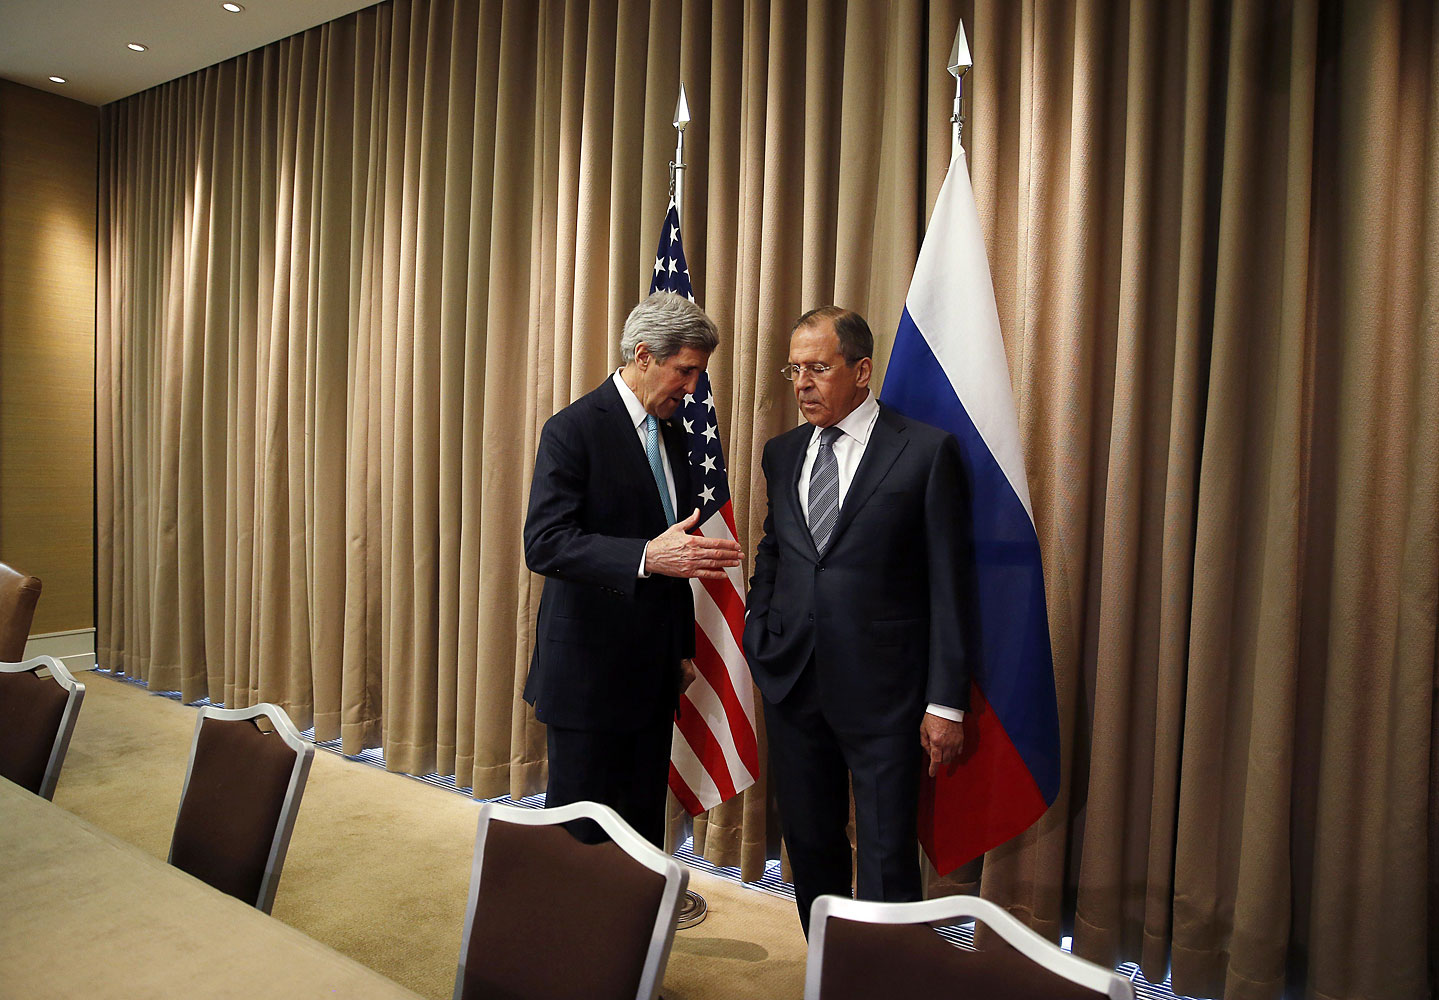 US Secretary of State John Kerry, left, talks with Russian Foreign minister Sergei Lavrov at the start of a bilateral meeting to discuss the ongoing situation in Ukraine on April 17, 2014 in Geneva.